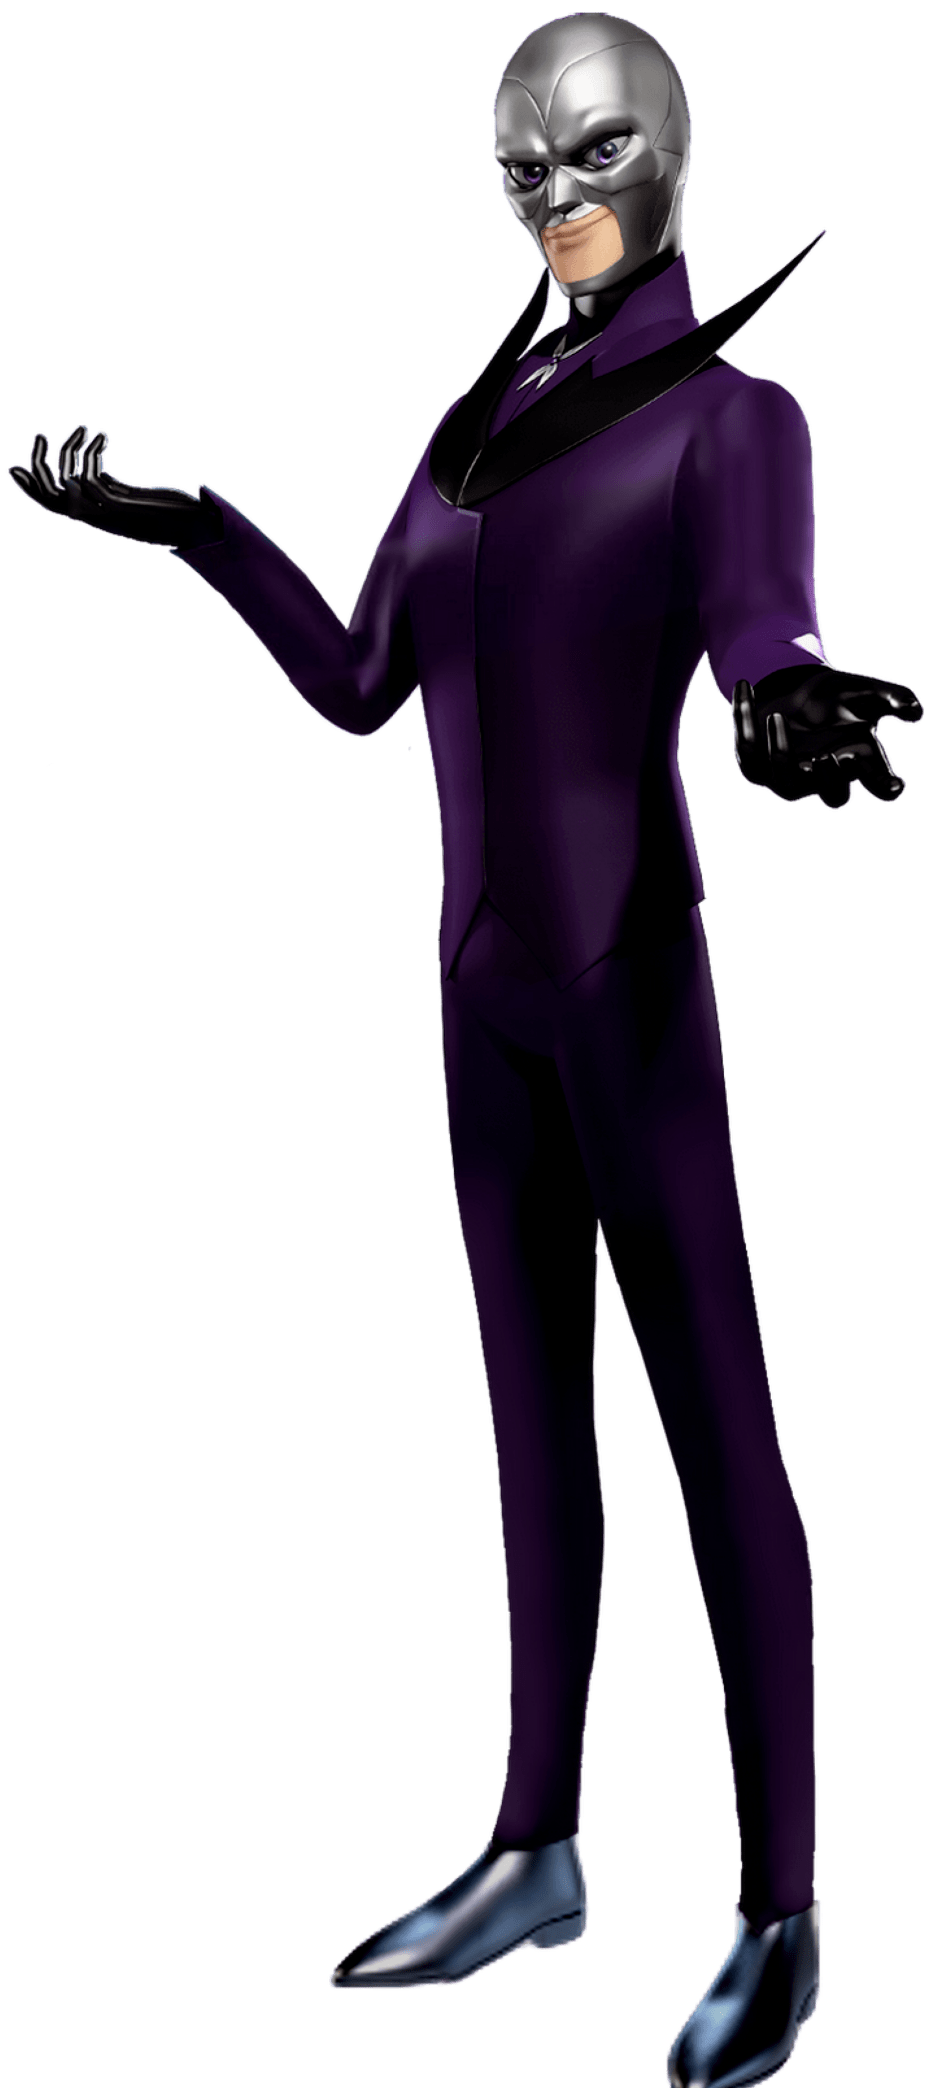 Hawk Moth | Villains Wiki | FANDOM powered by Wikia